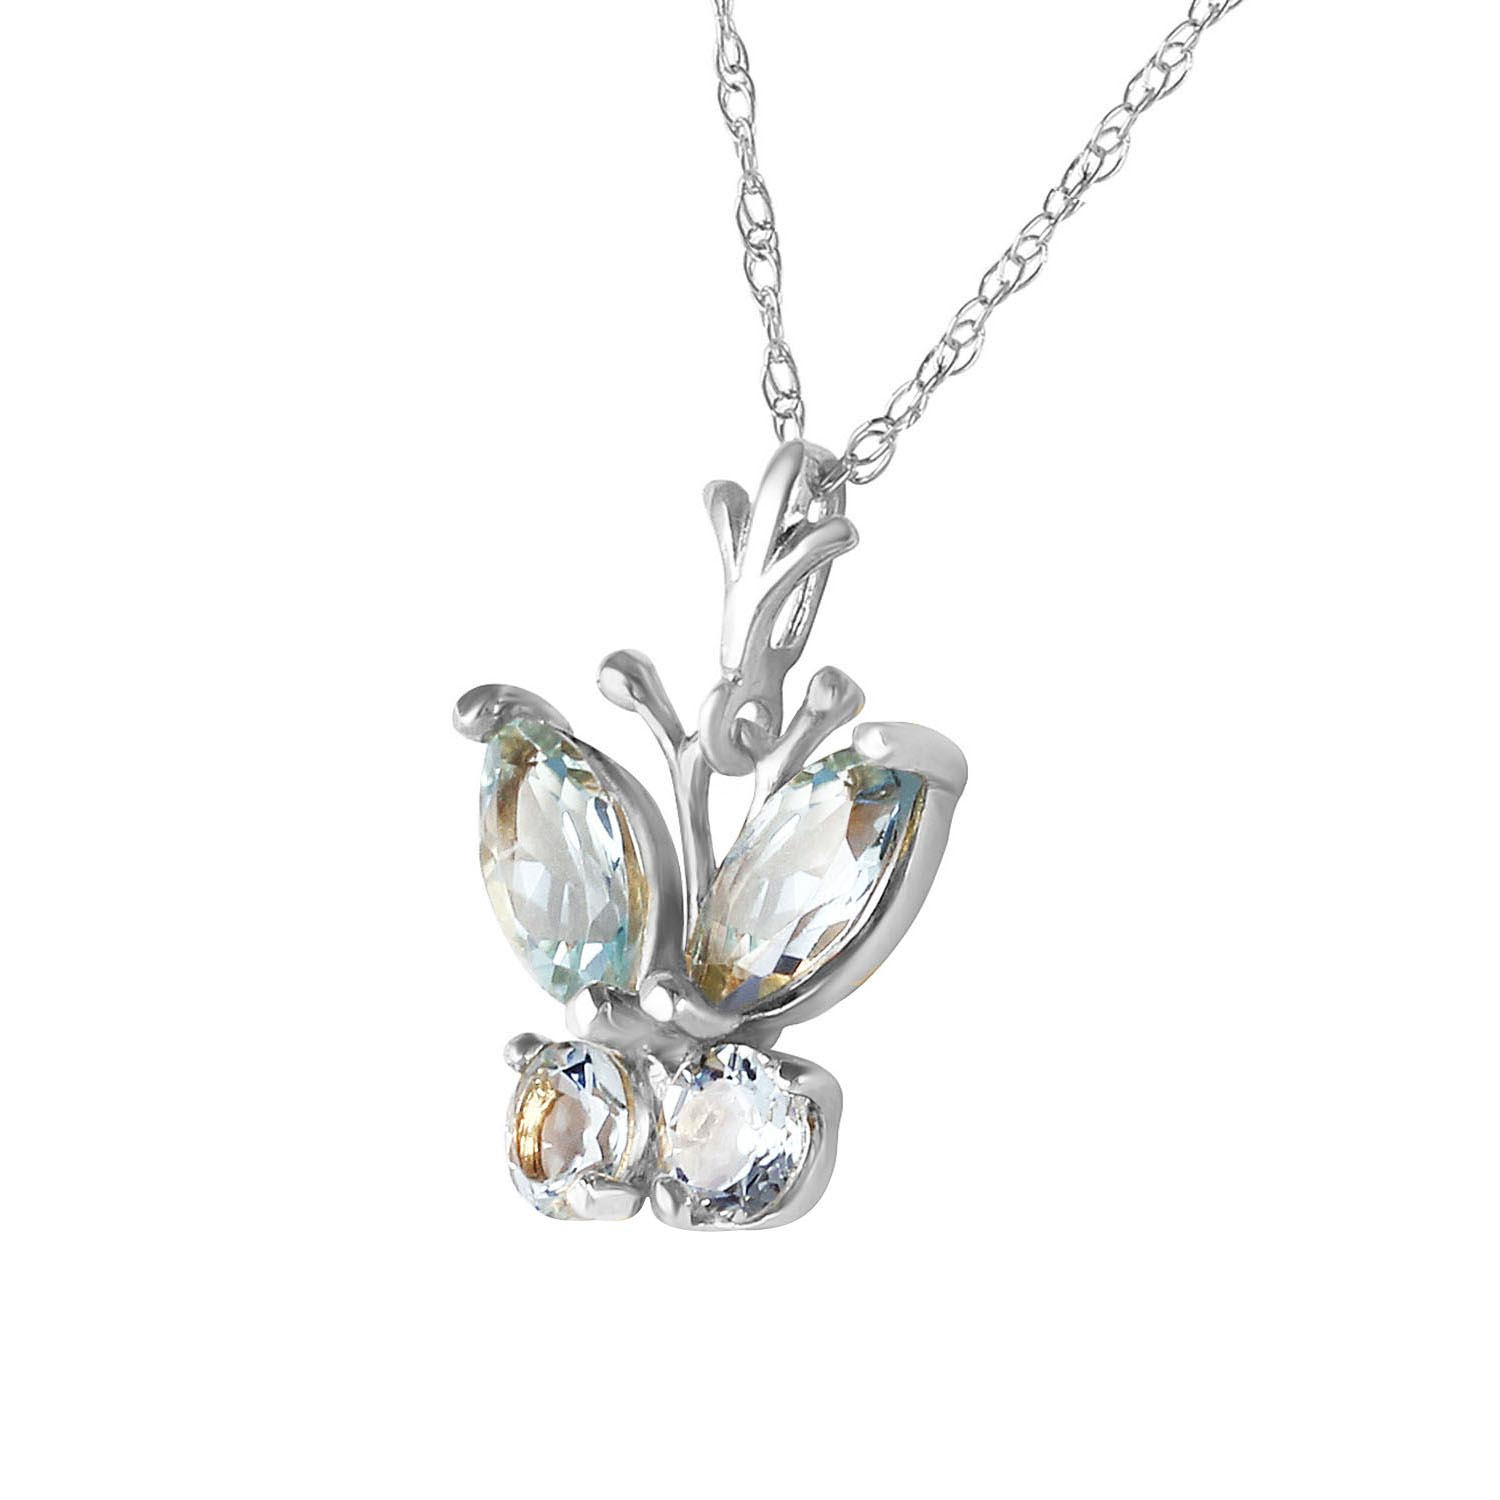 Aquamarine Butterfly Pendant Necklace 0.6ctw in 14K White Gold